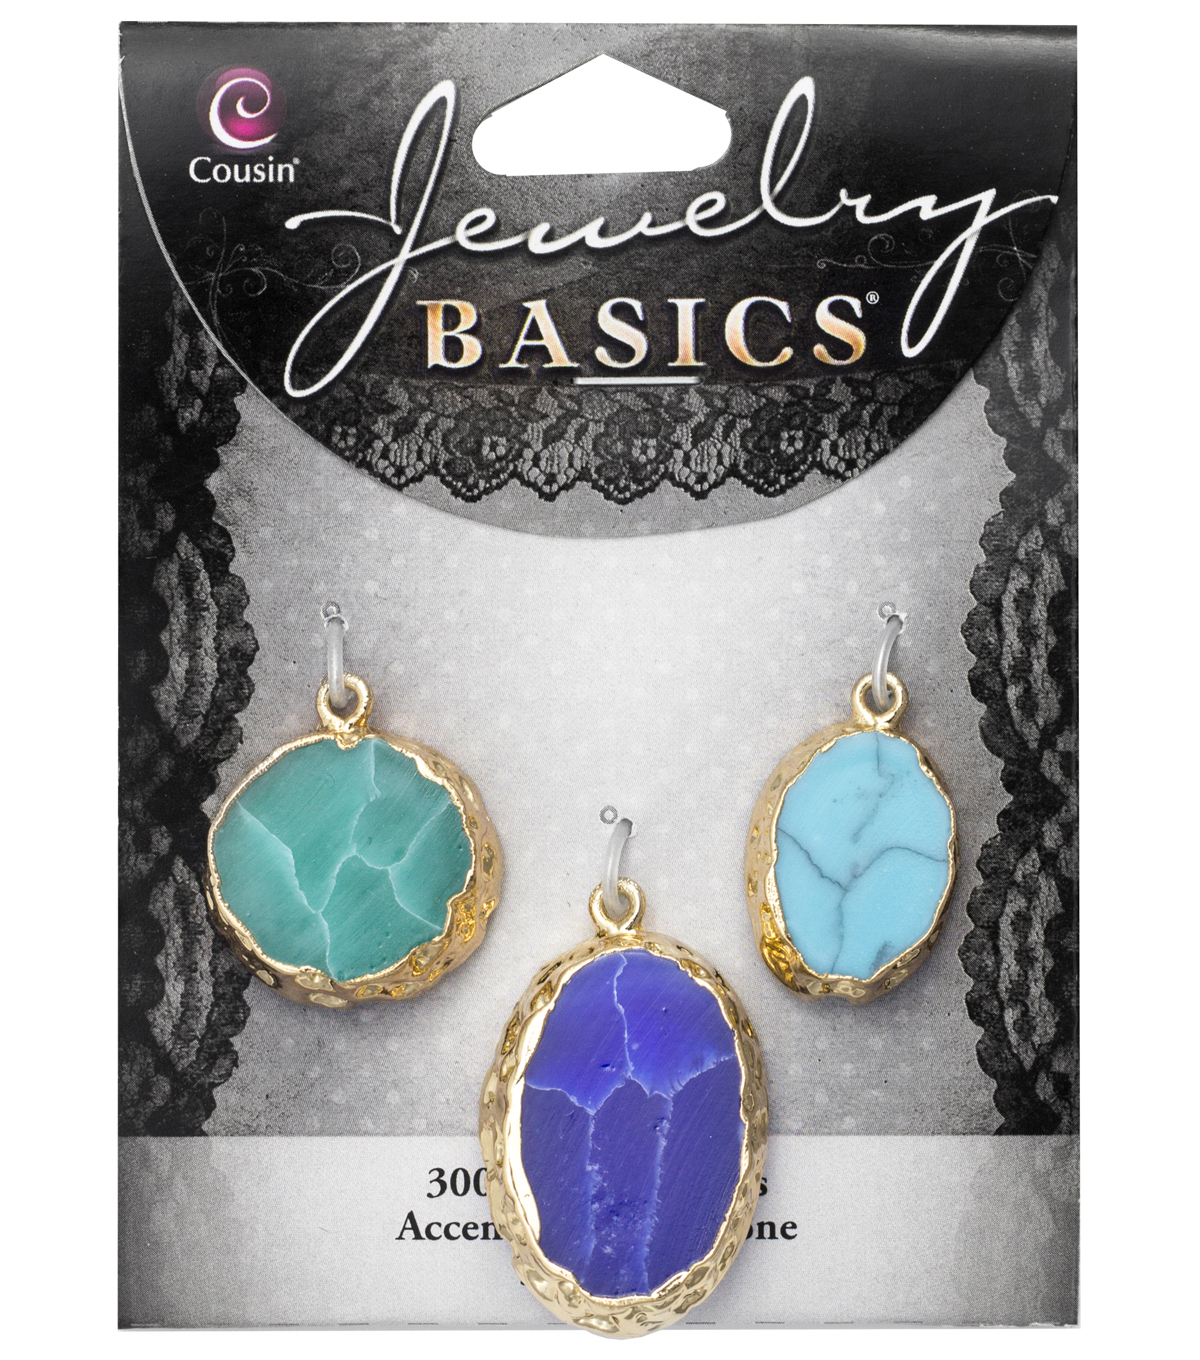 Cousin® Jewelry Basics 3 Pack Gold Trim Stones-Blue,Green,Turquoise